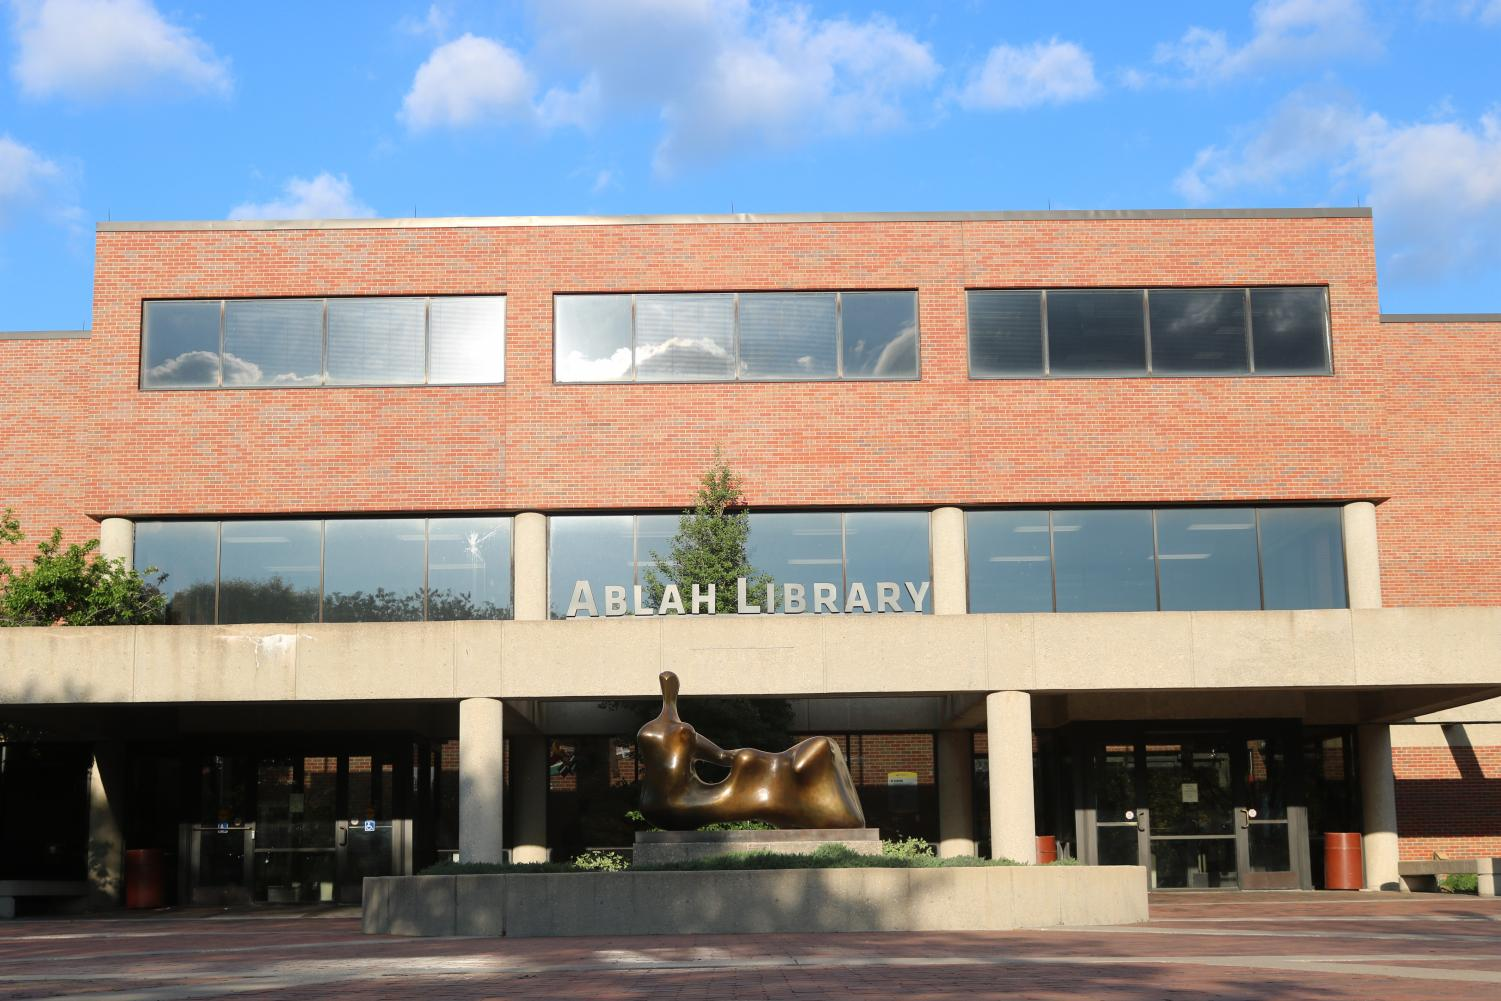 Wichita State University's Ablah Library.